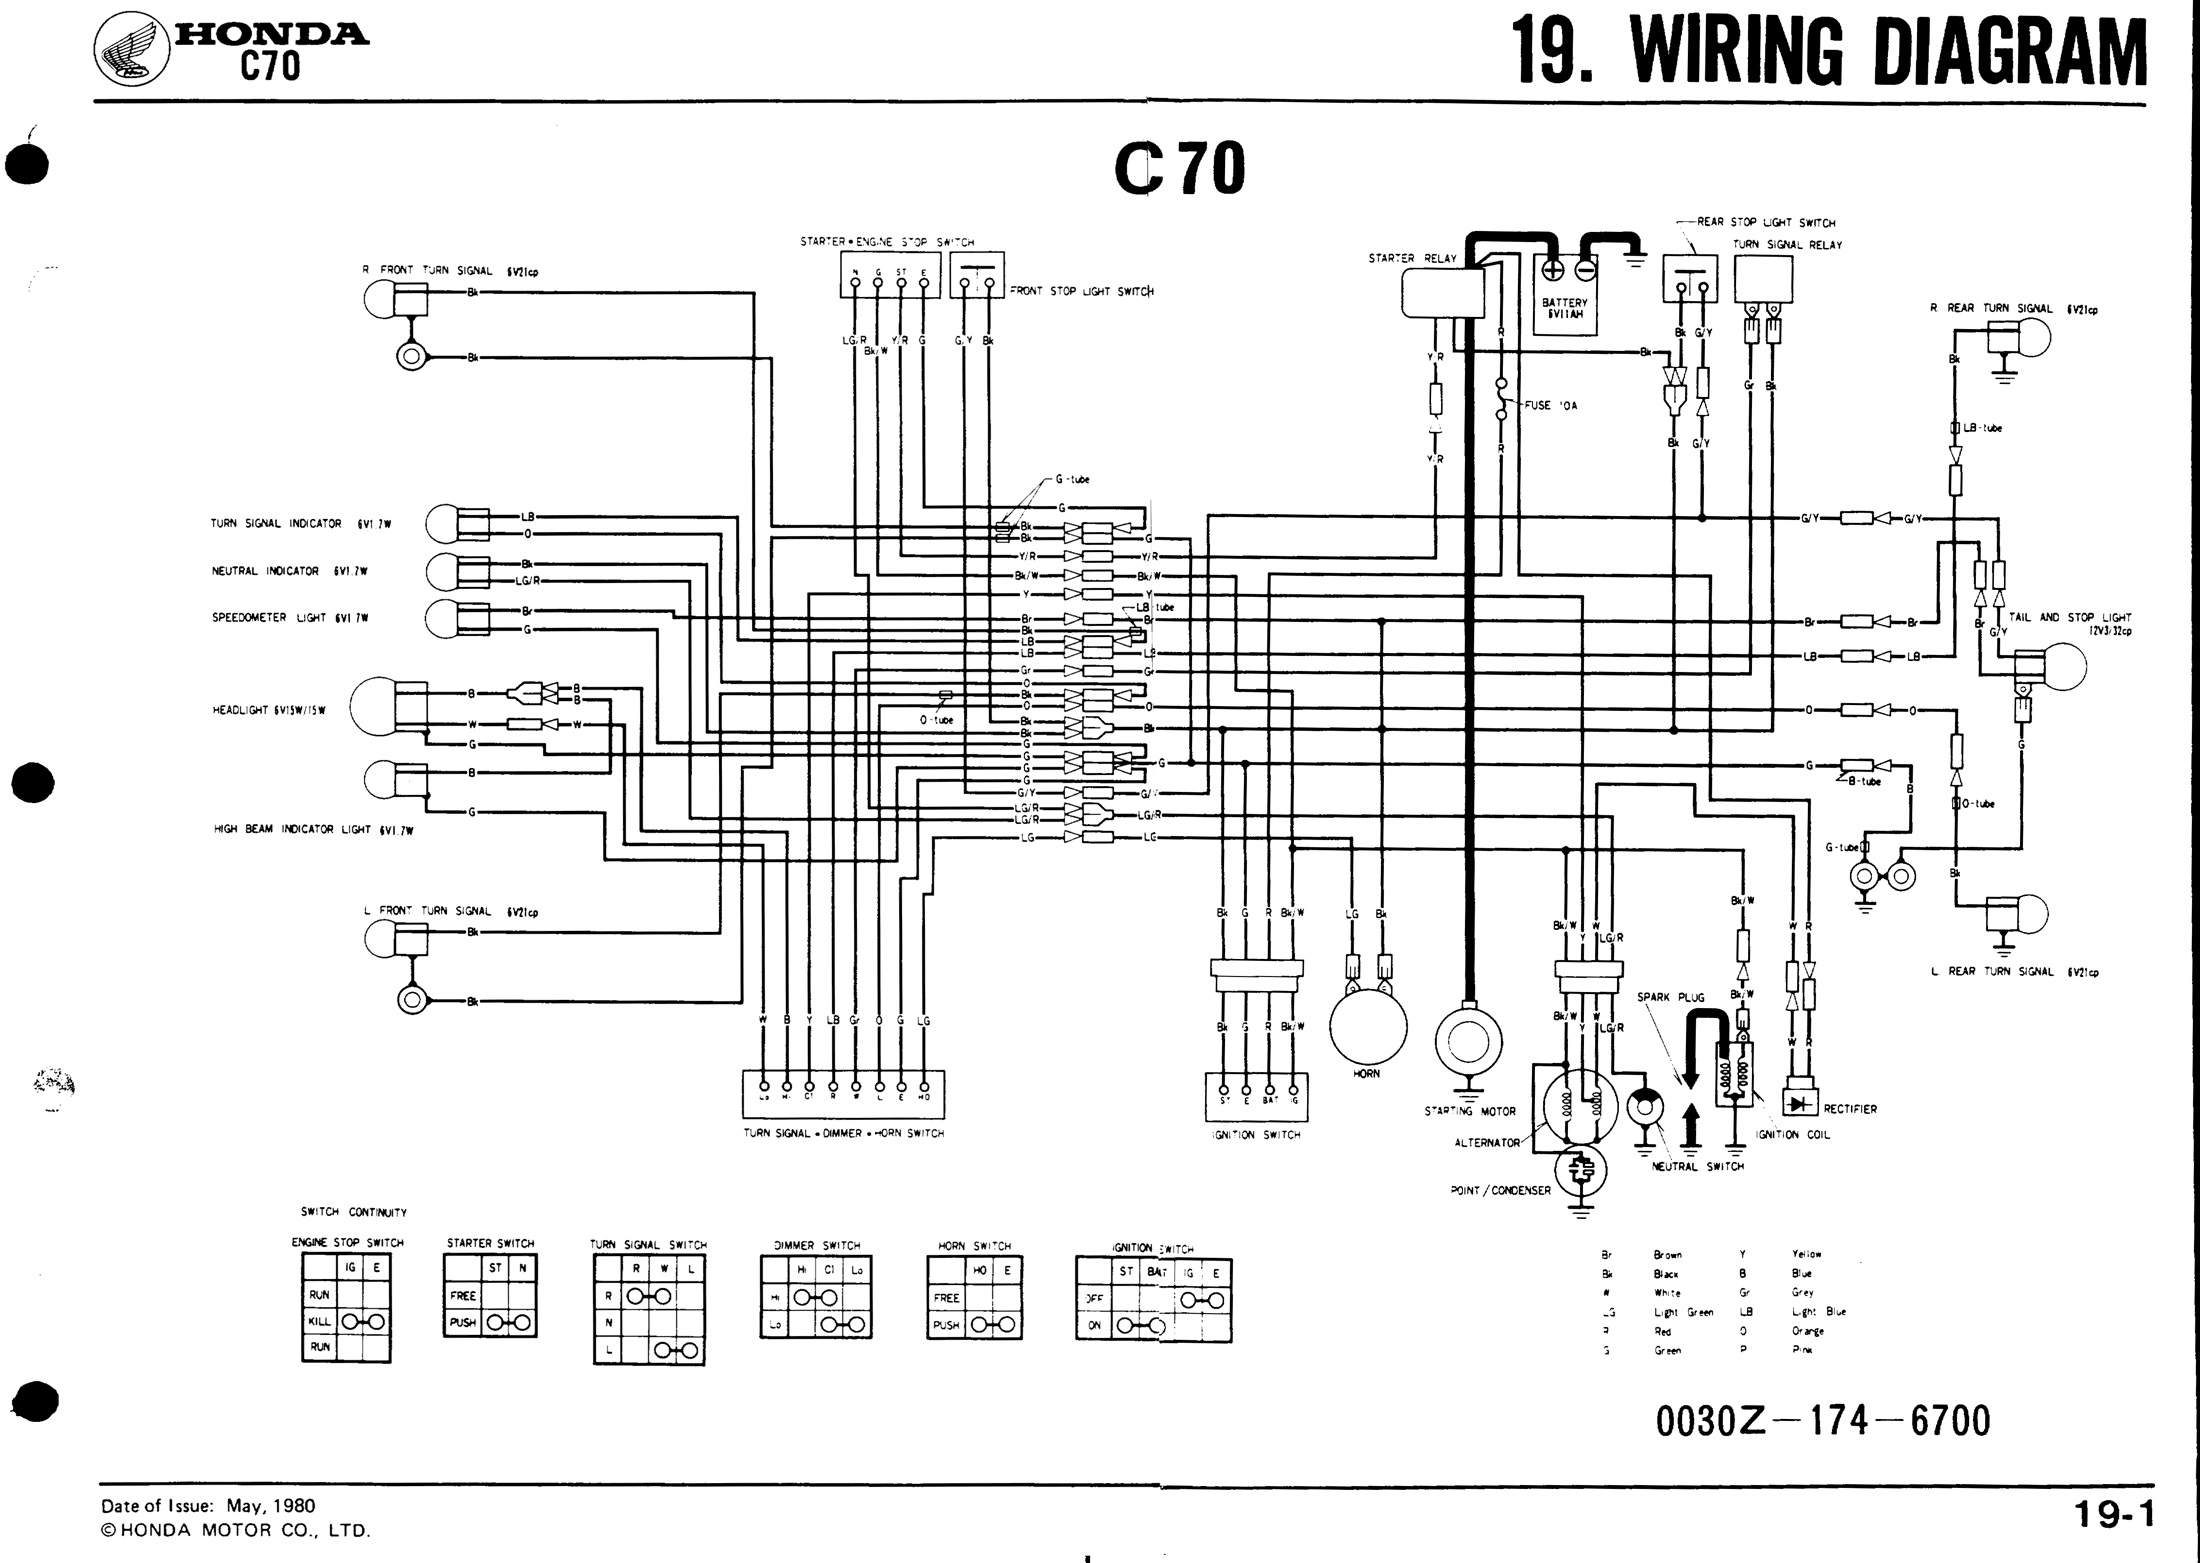 Fixforcewiring additionally F  22 in addition Sony Car Stereo Wiring Diagram together with Deck Assembly besides Wiring diagrams. on honda 90 ignition wiring diagram